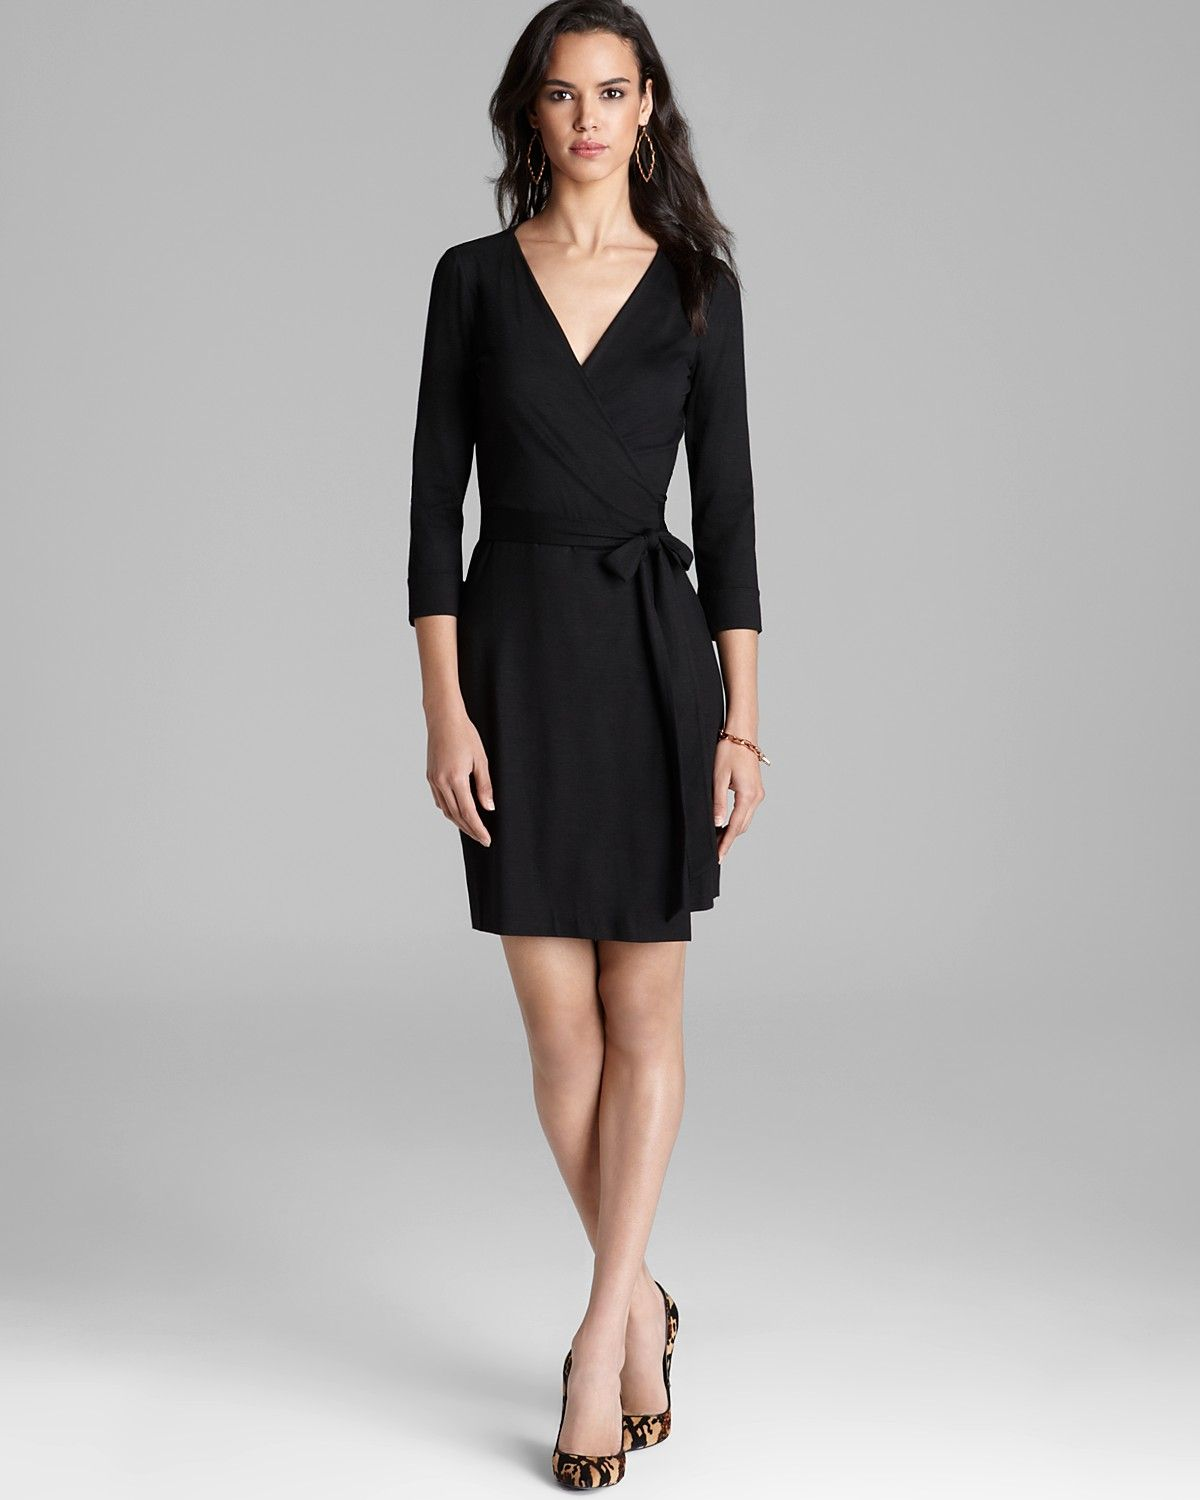 DIANE von FURSTENBERG Wrap Dress - Julian Mini | Bloomingdale's